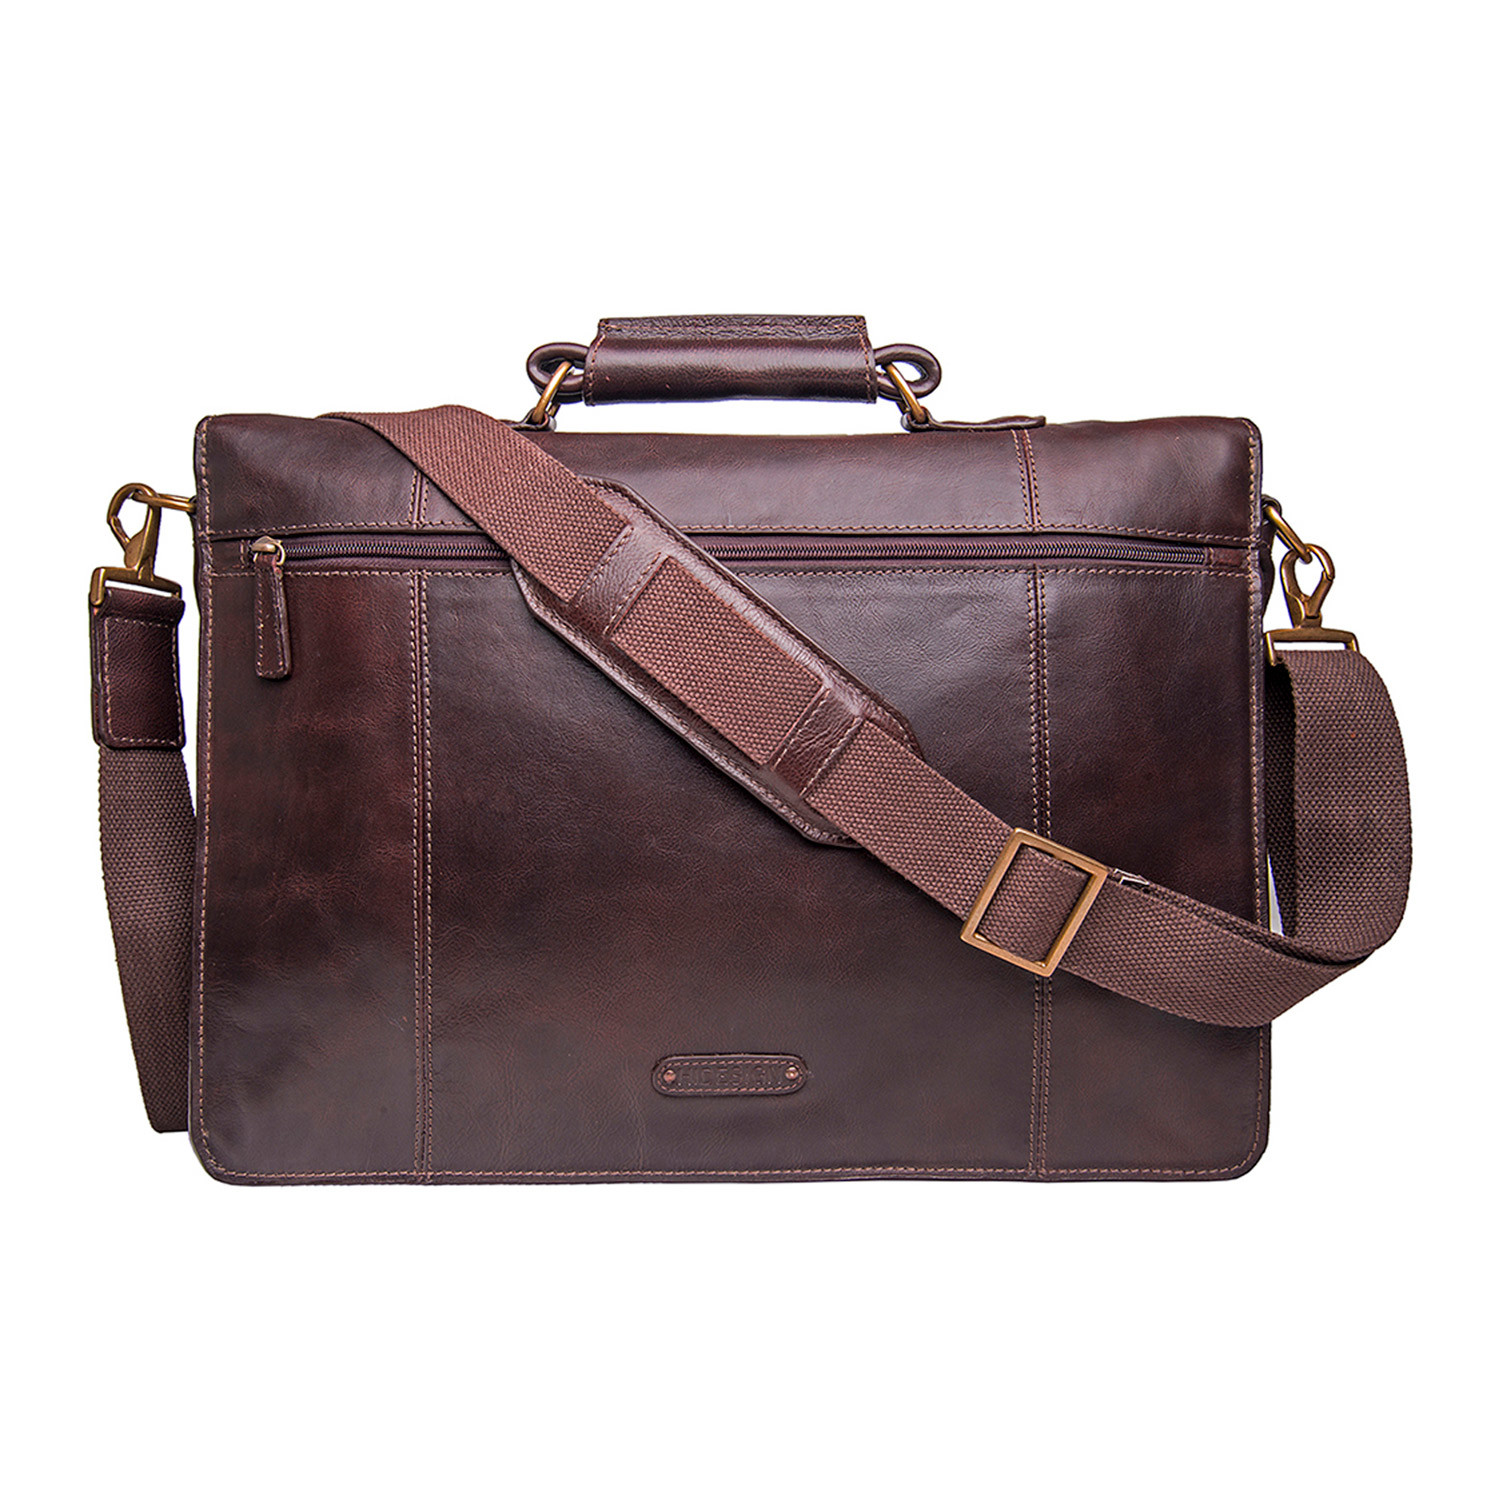 Parker Leather Briefcase Brown Large Hidesign